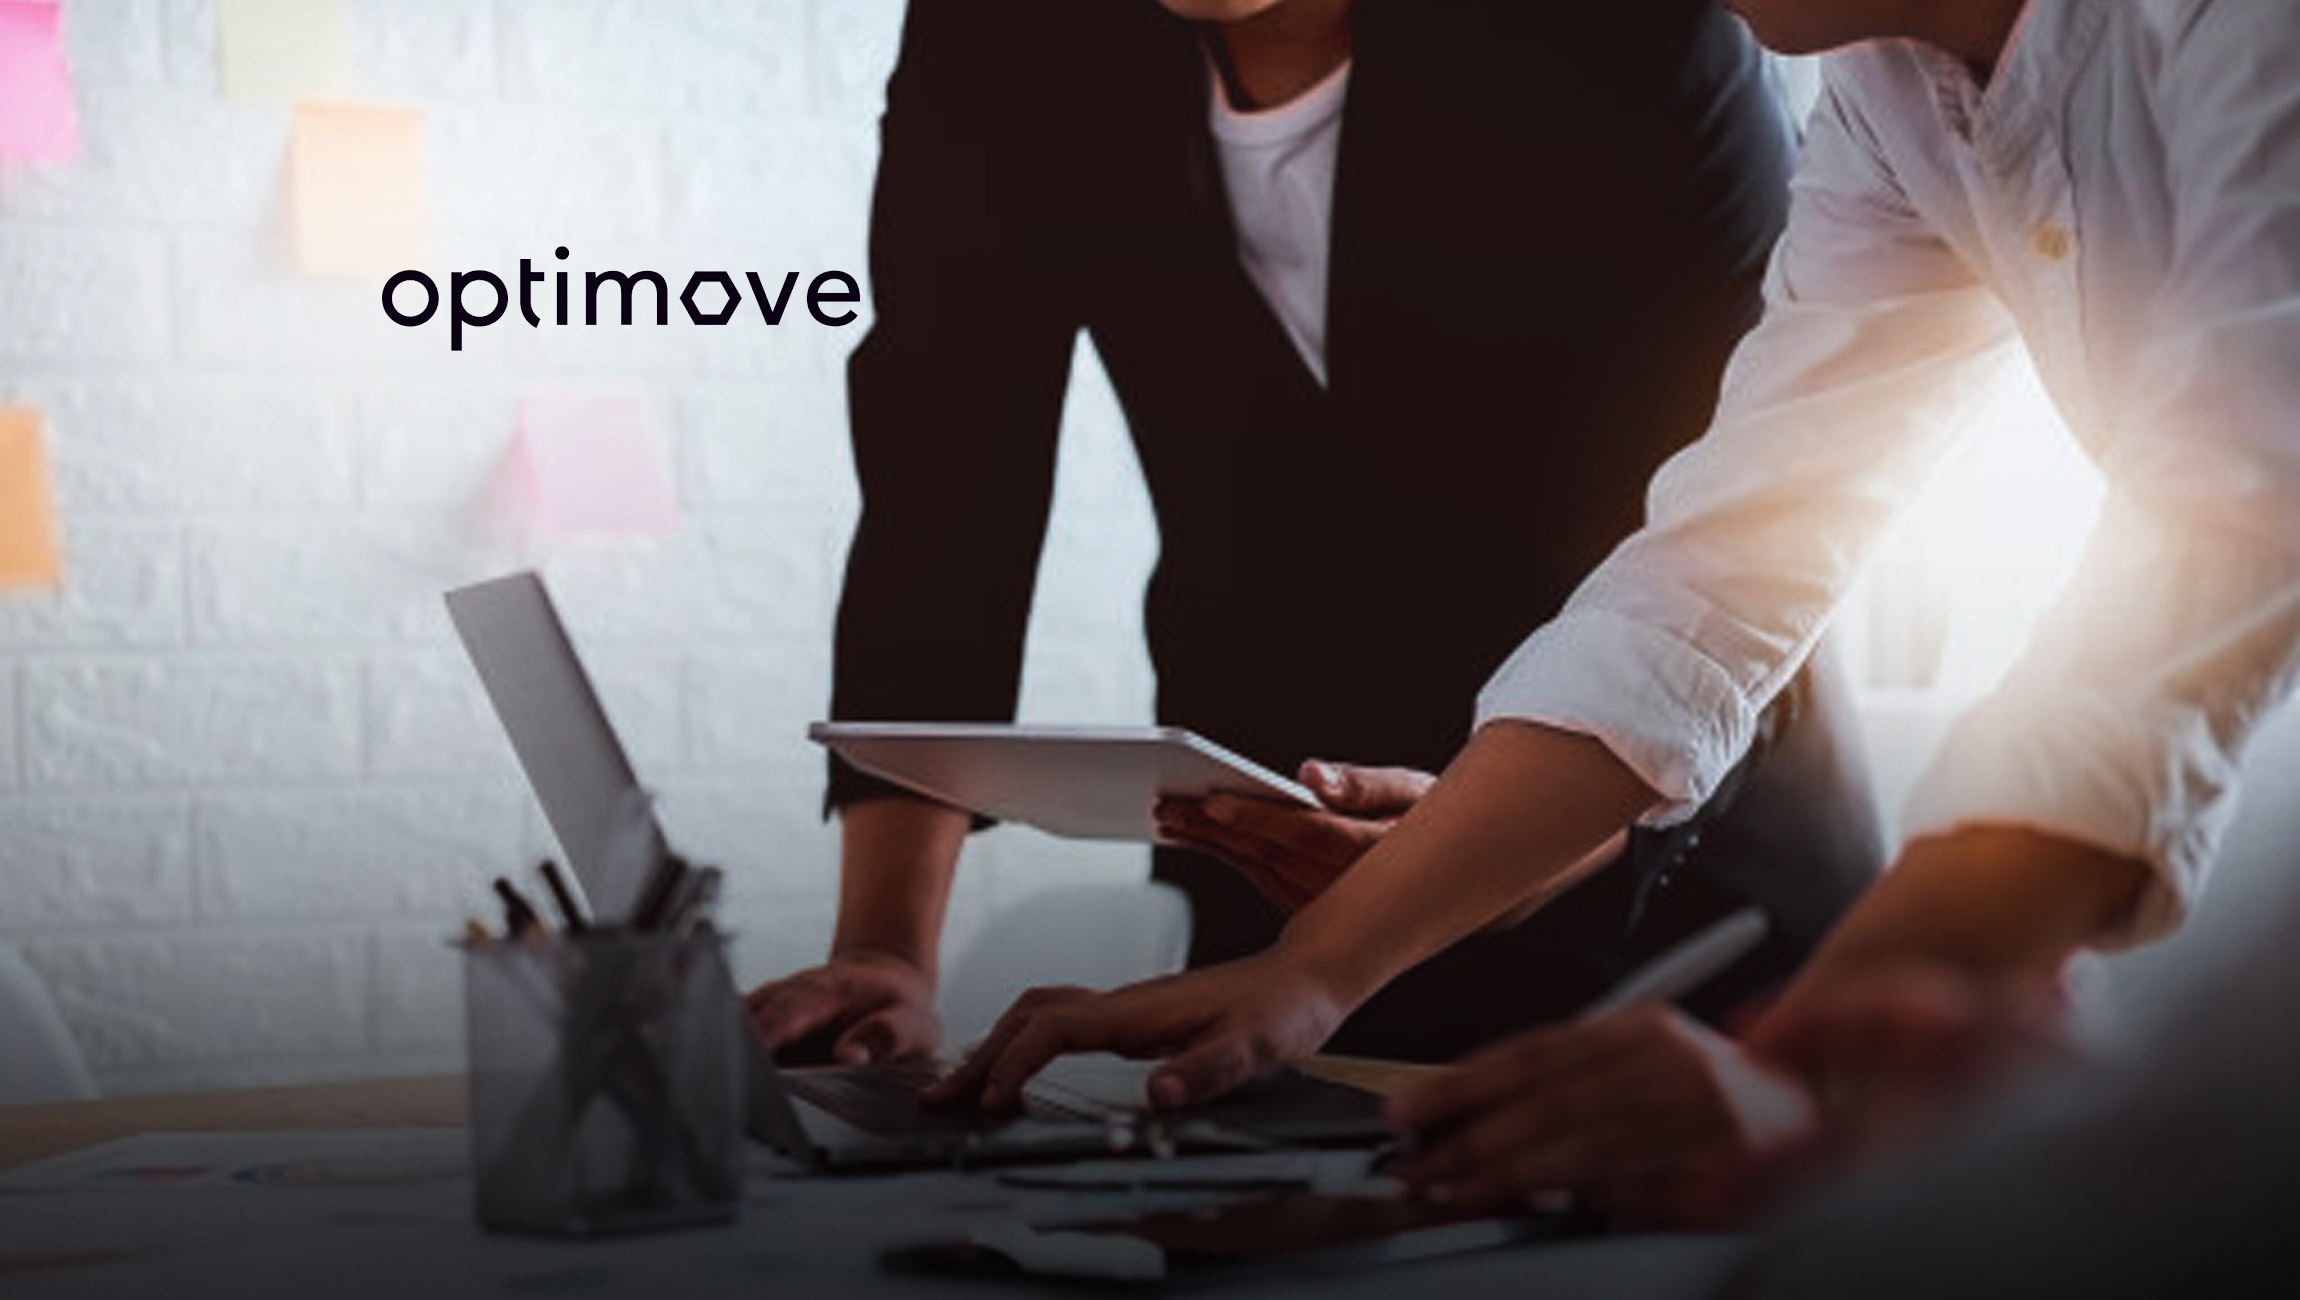 Optimove Recognized as a Challenger in the Gartner Magic Quadrant for Multichannel Marketing Hubs